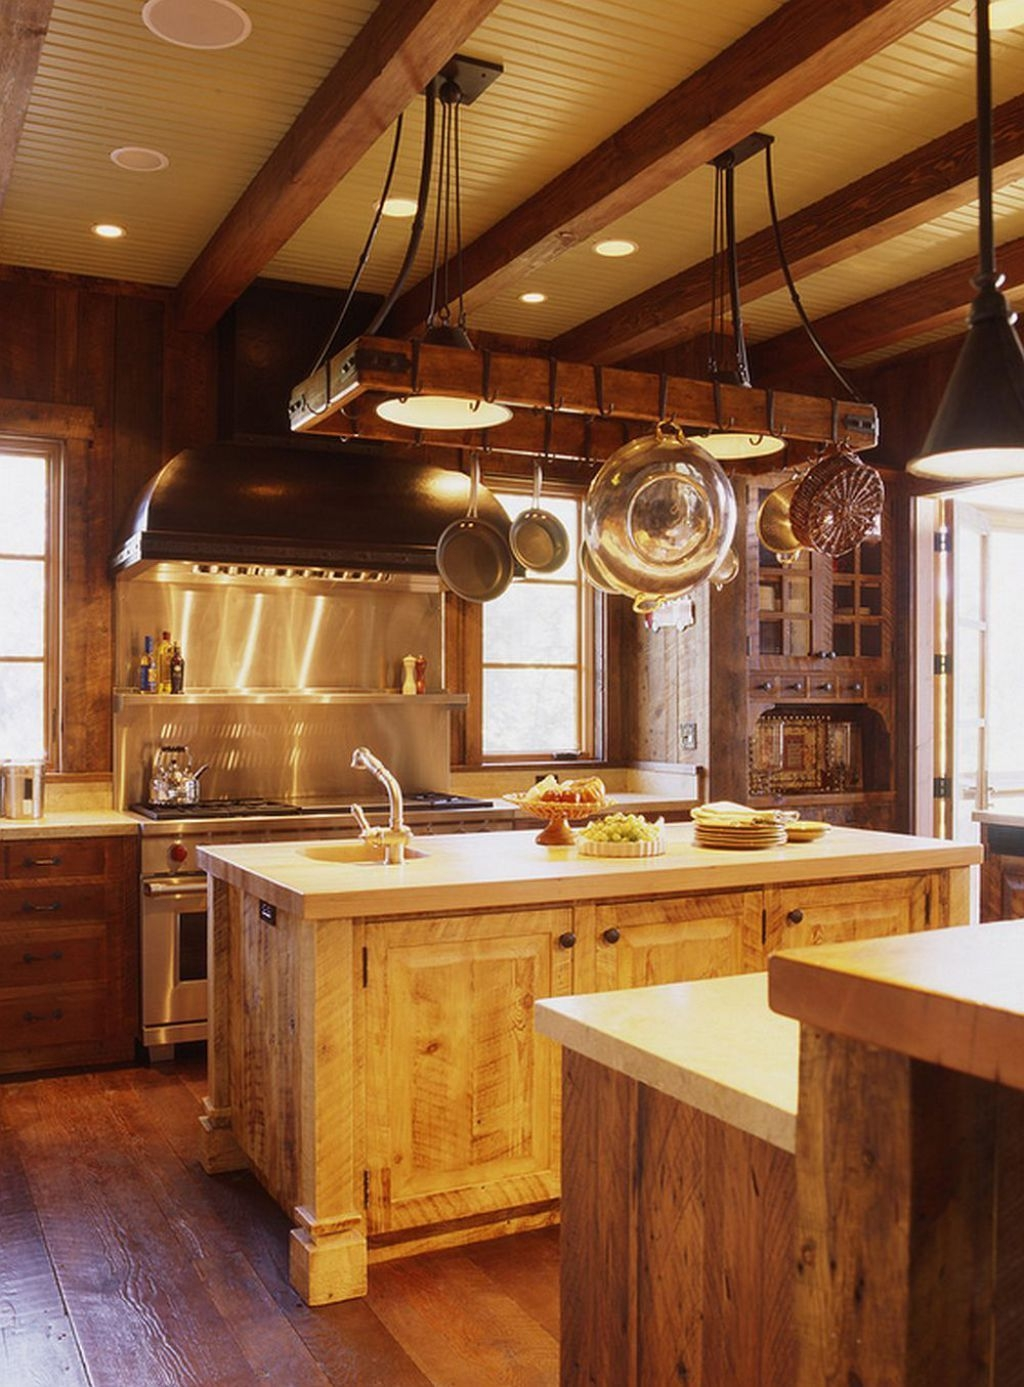 Superbe Custom Kitchen Islands With Wood Countertops And Hanging Pot Rack